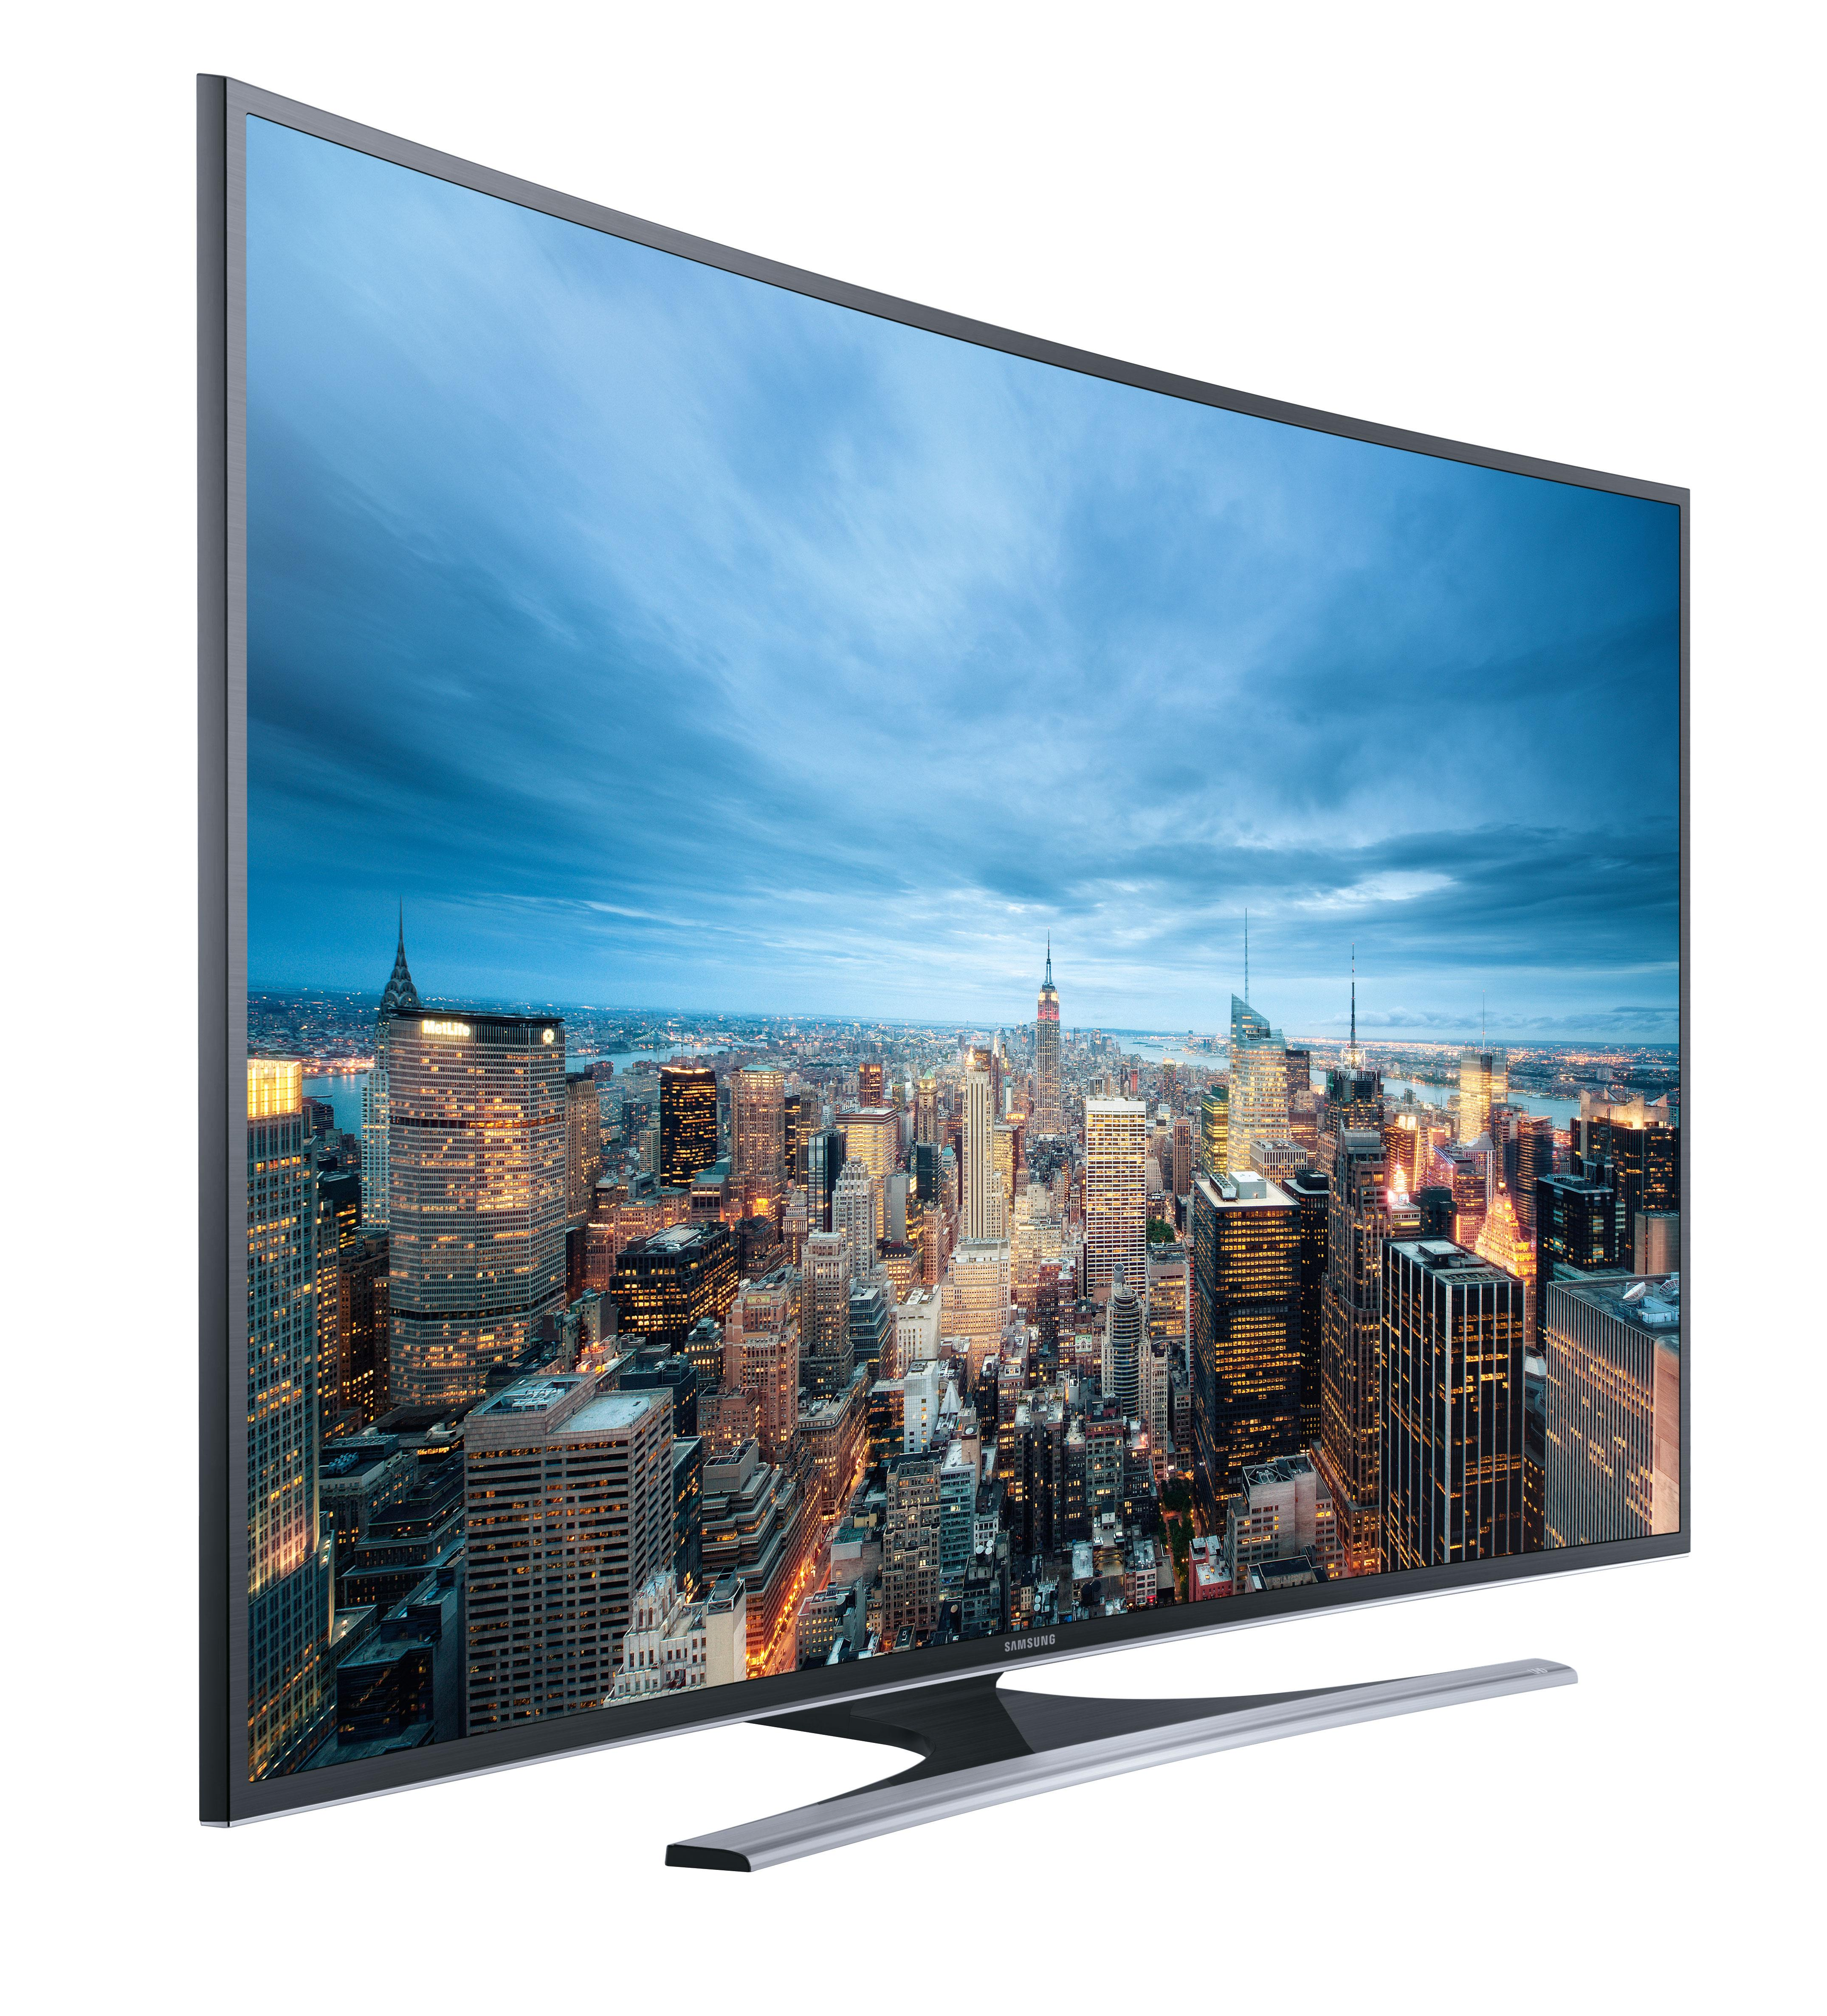 samsung ju6560 138 cm 55 zoll curved fernseher ultra hd triple tuner smart tv. Black Bedroom Furniture Sets. Home Design Ideas